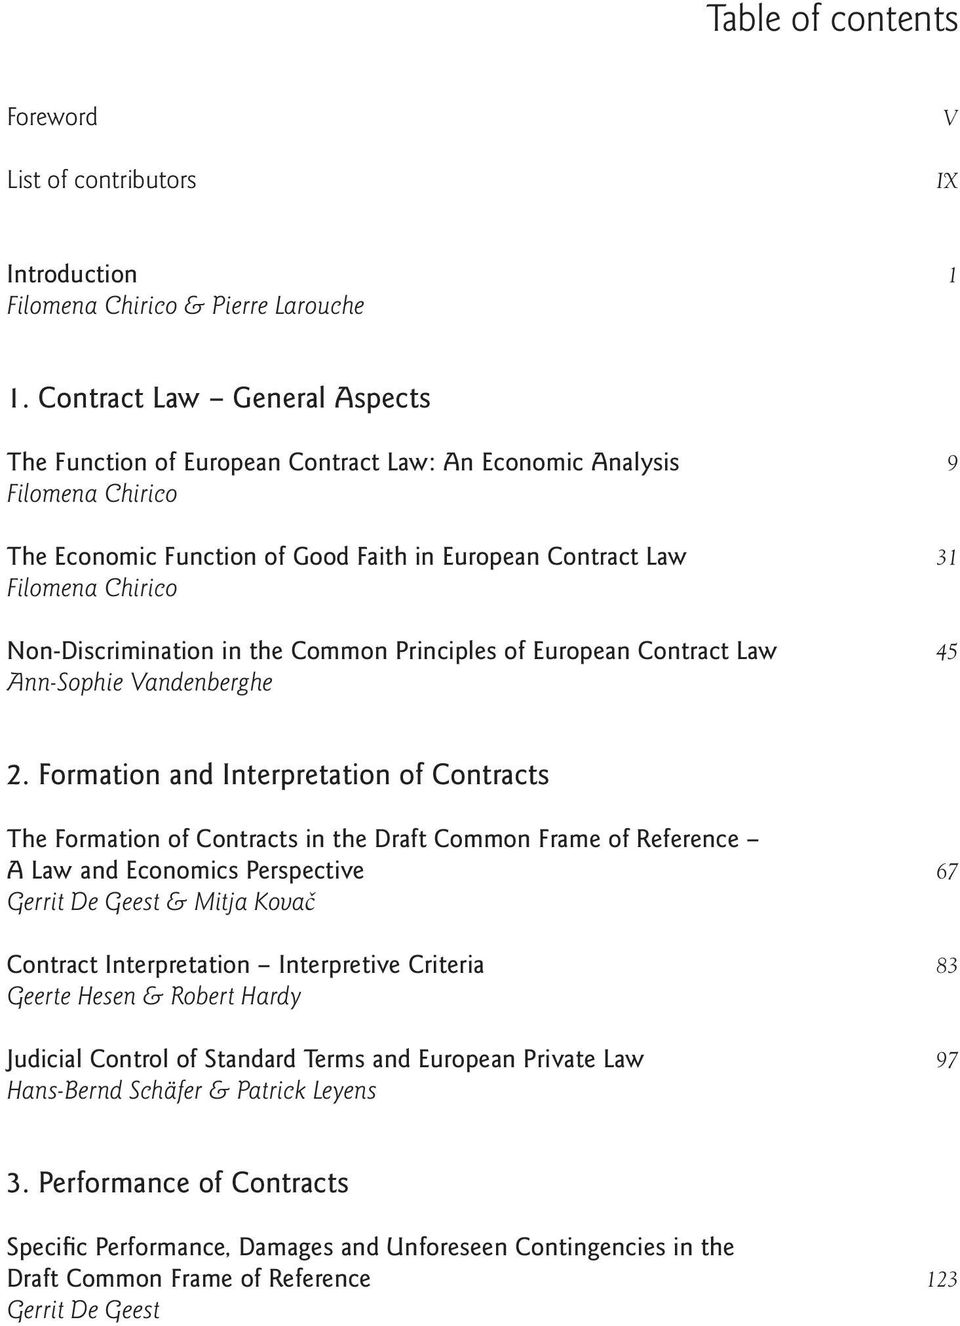 Non-Discrimination in the Common Principles of European Contract Law 45 Ann-Sophie Vandenberghe 2.